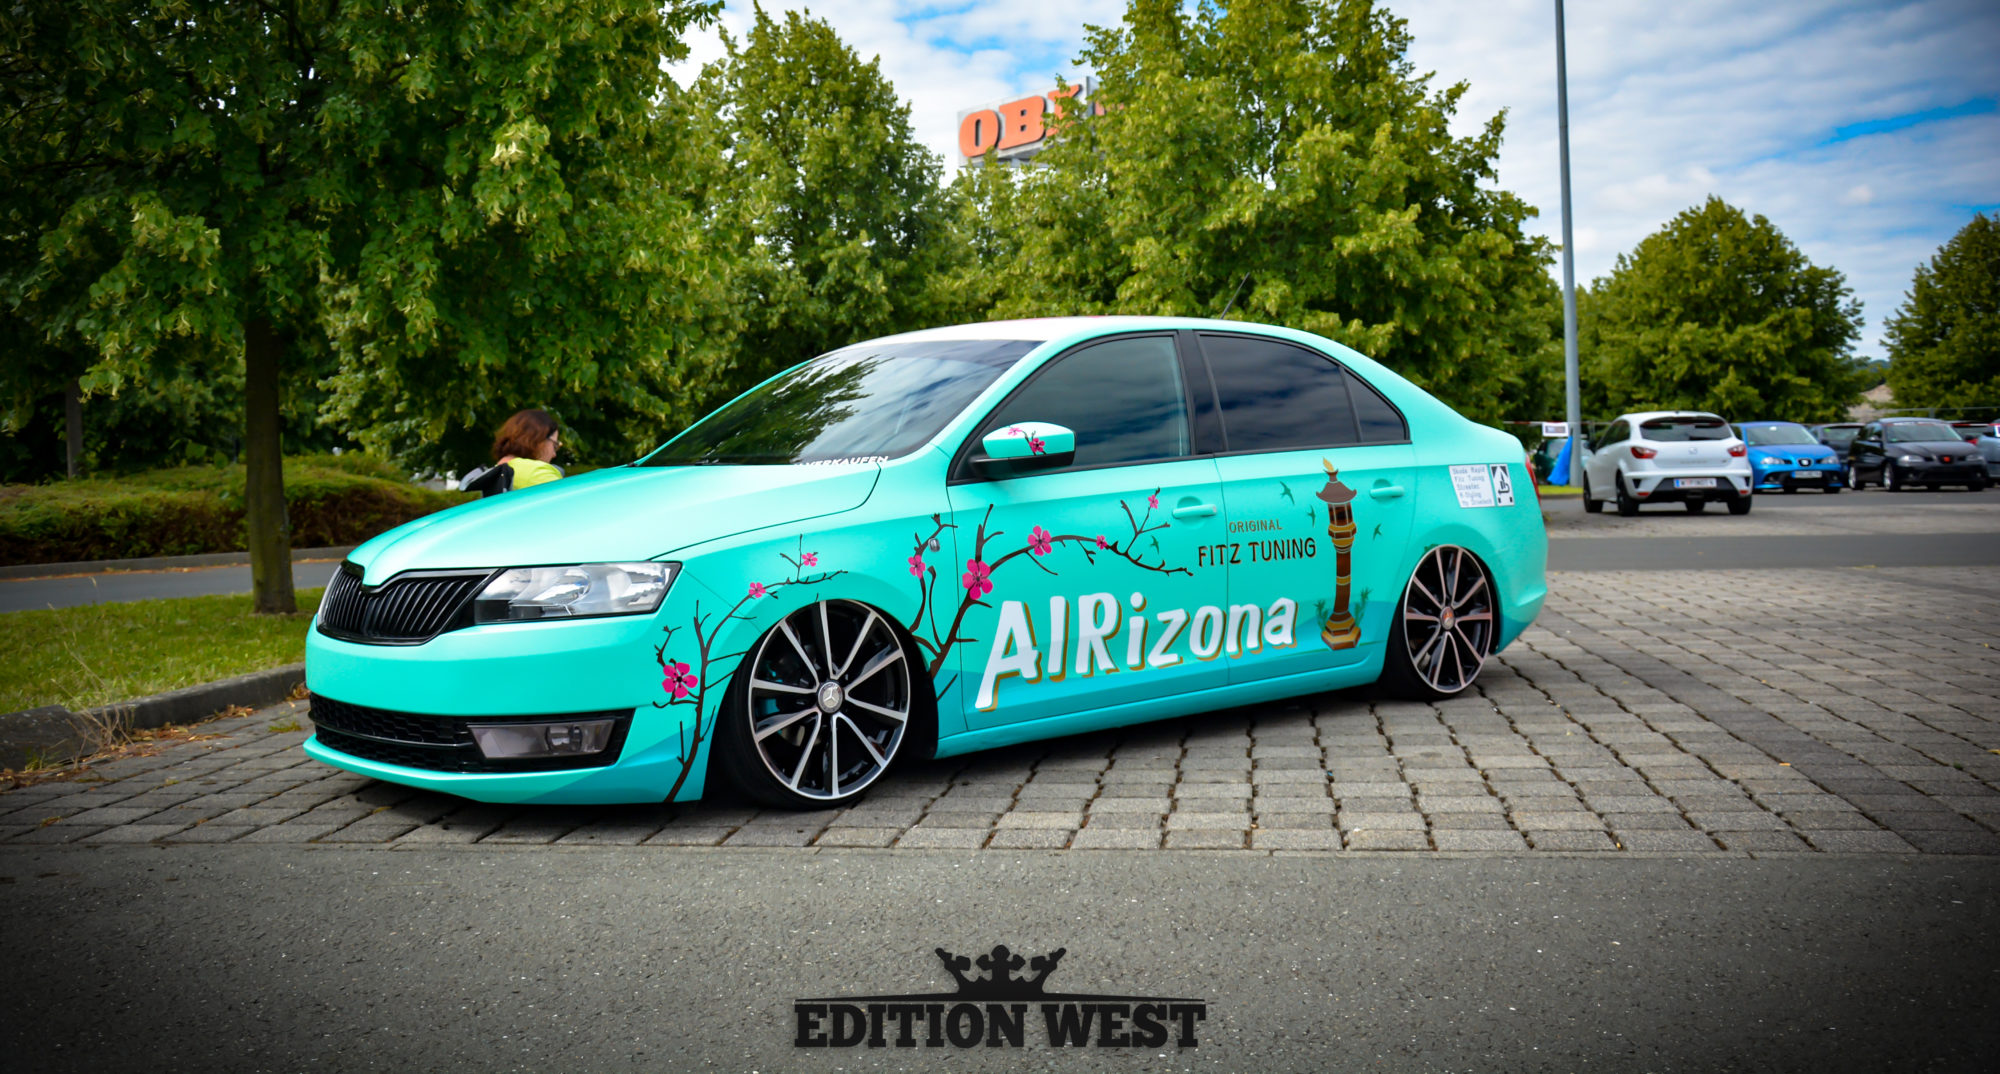 Edition-West